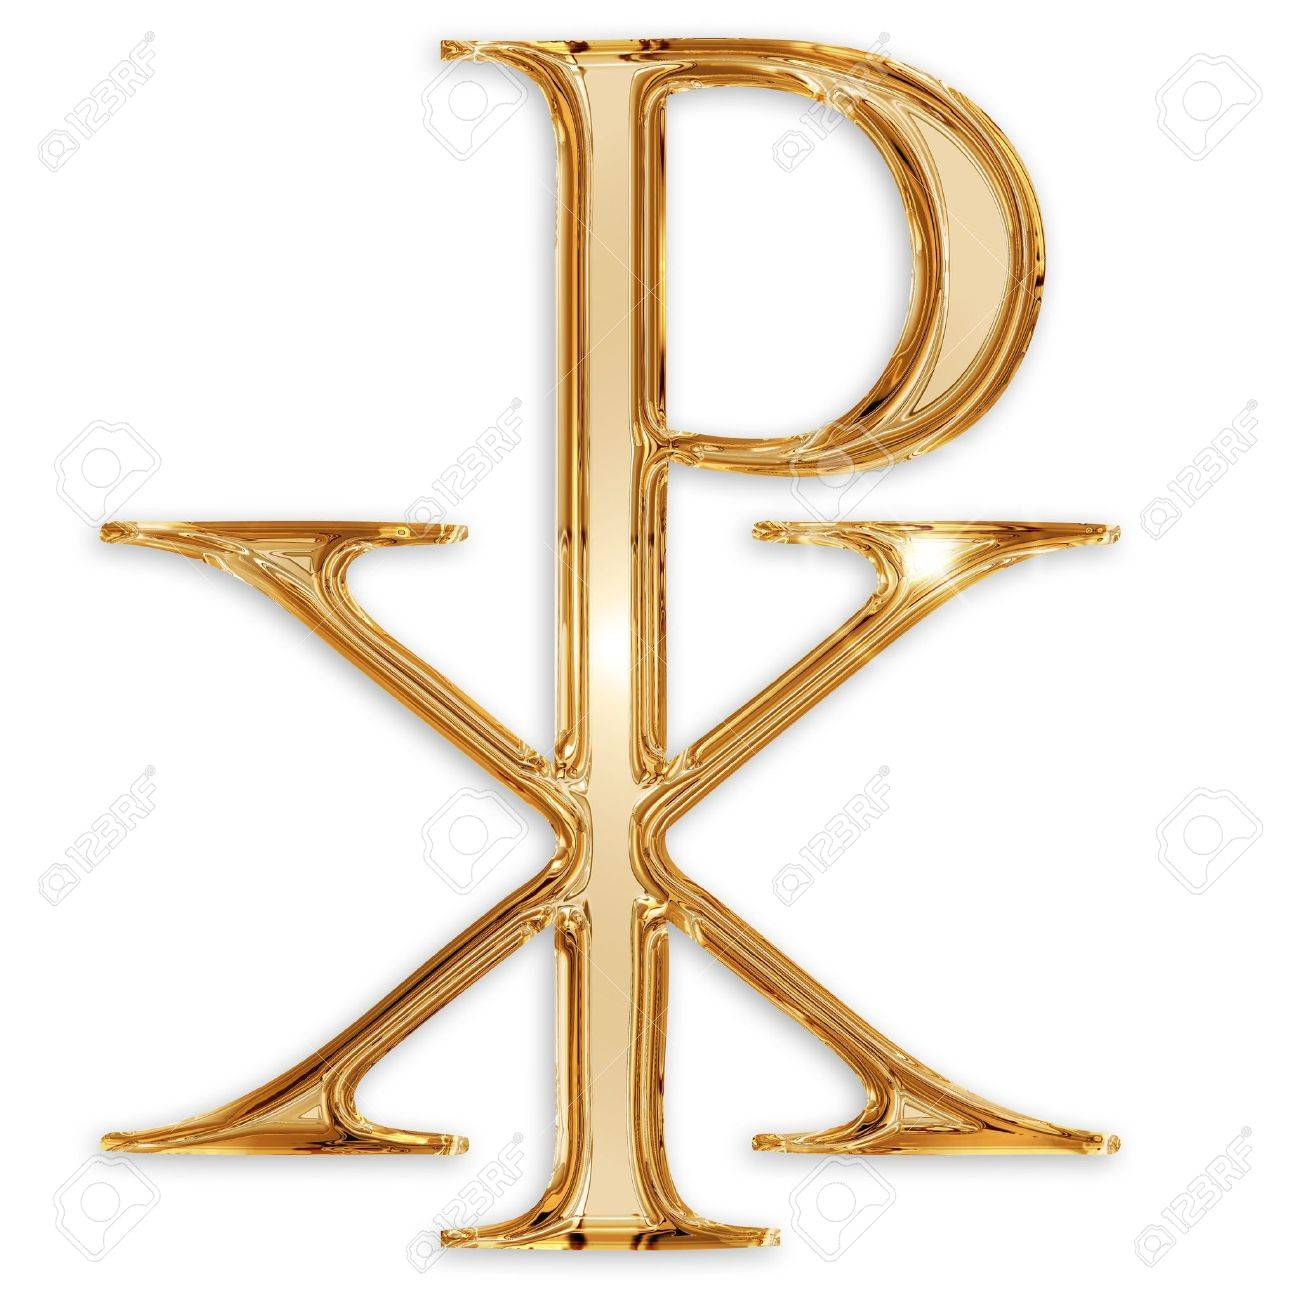 Chi rho christian symbol isolated on white background stock photo chi rho christian symbol isolated on white background stock photo 17695329 buycottarizona